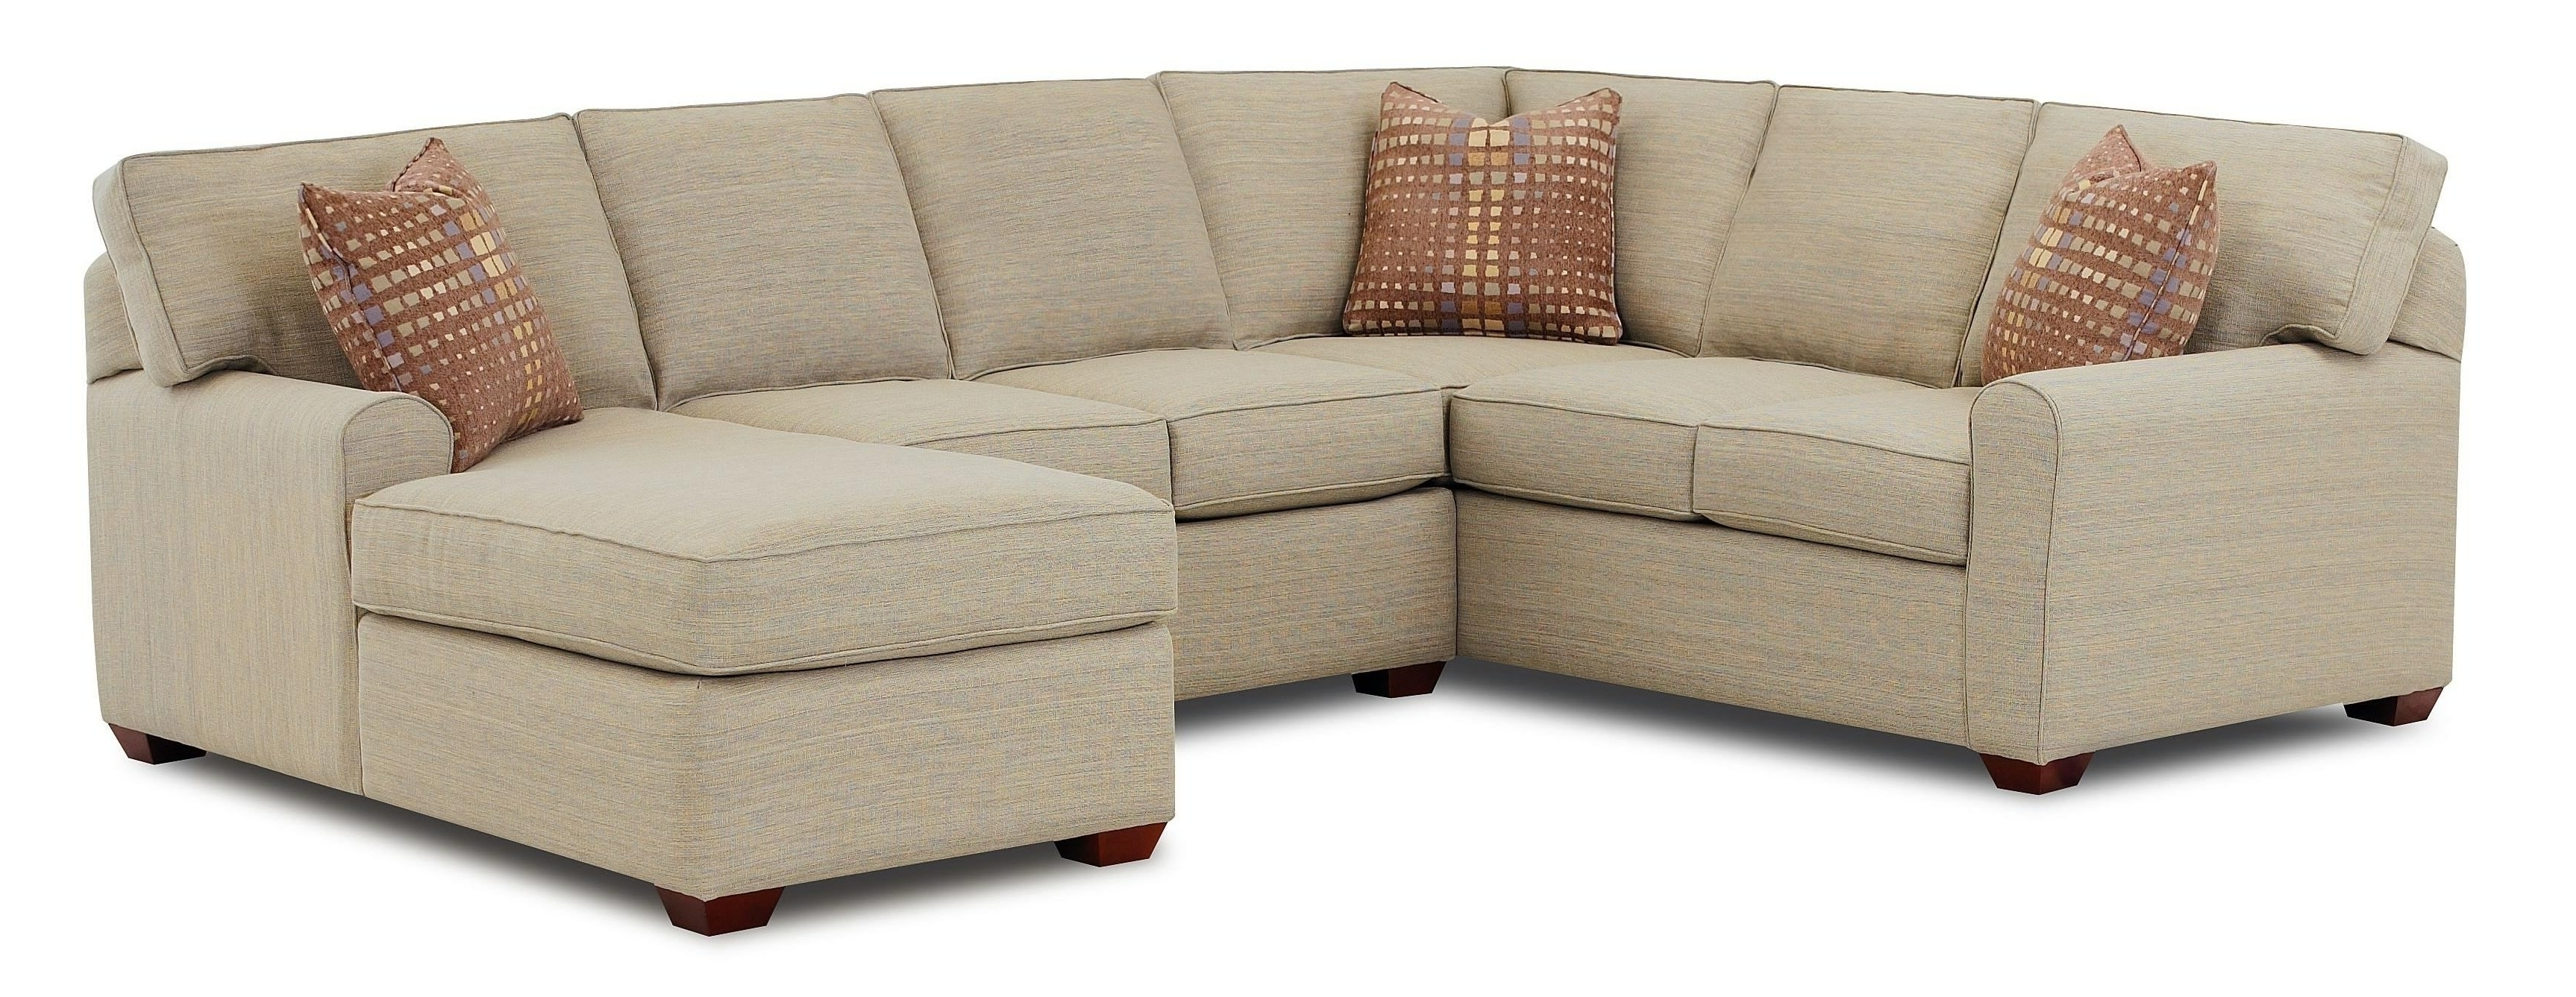 Best And Newest Sectional Sofa Design: Small Sectional Sofa With Chaise Lounge Throughout Small Couches With Chaise (View 3 of 15)